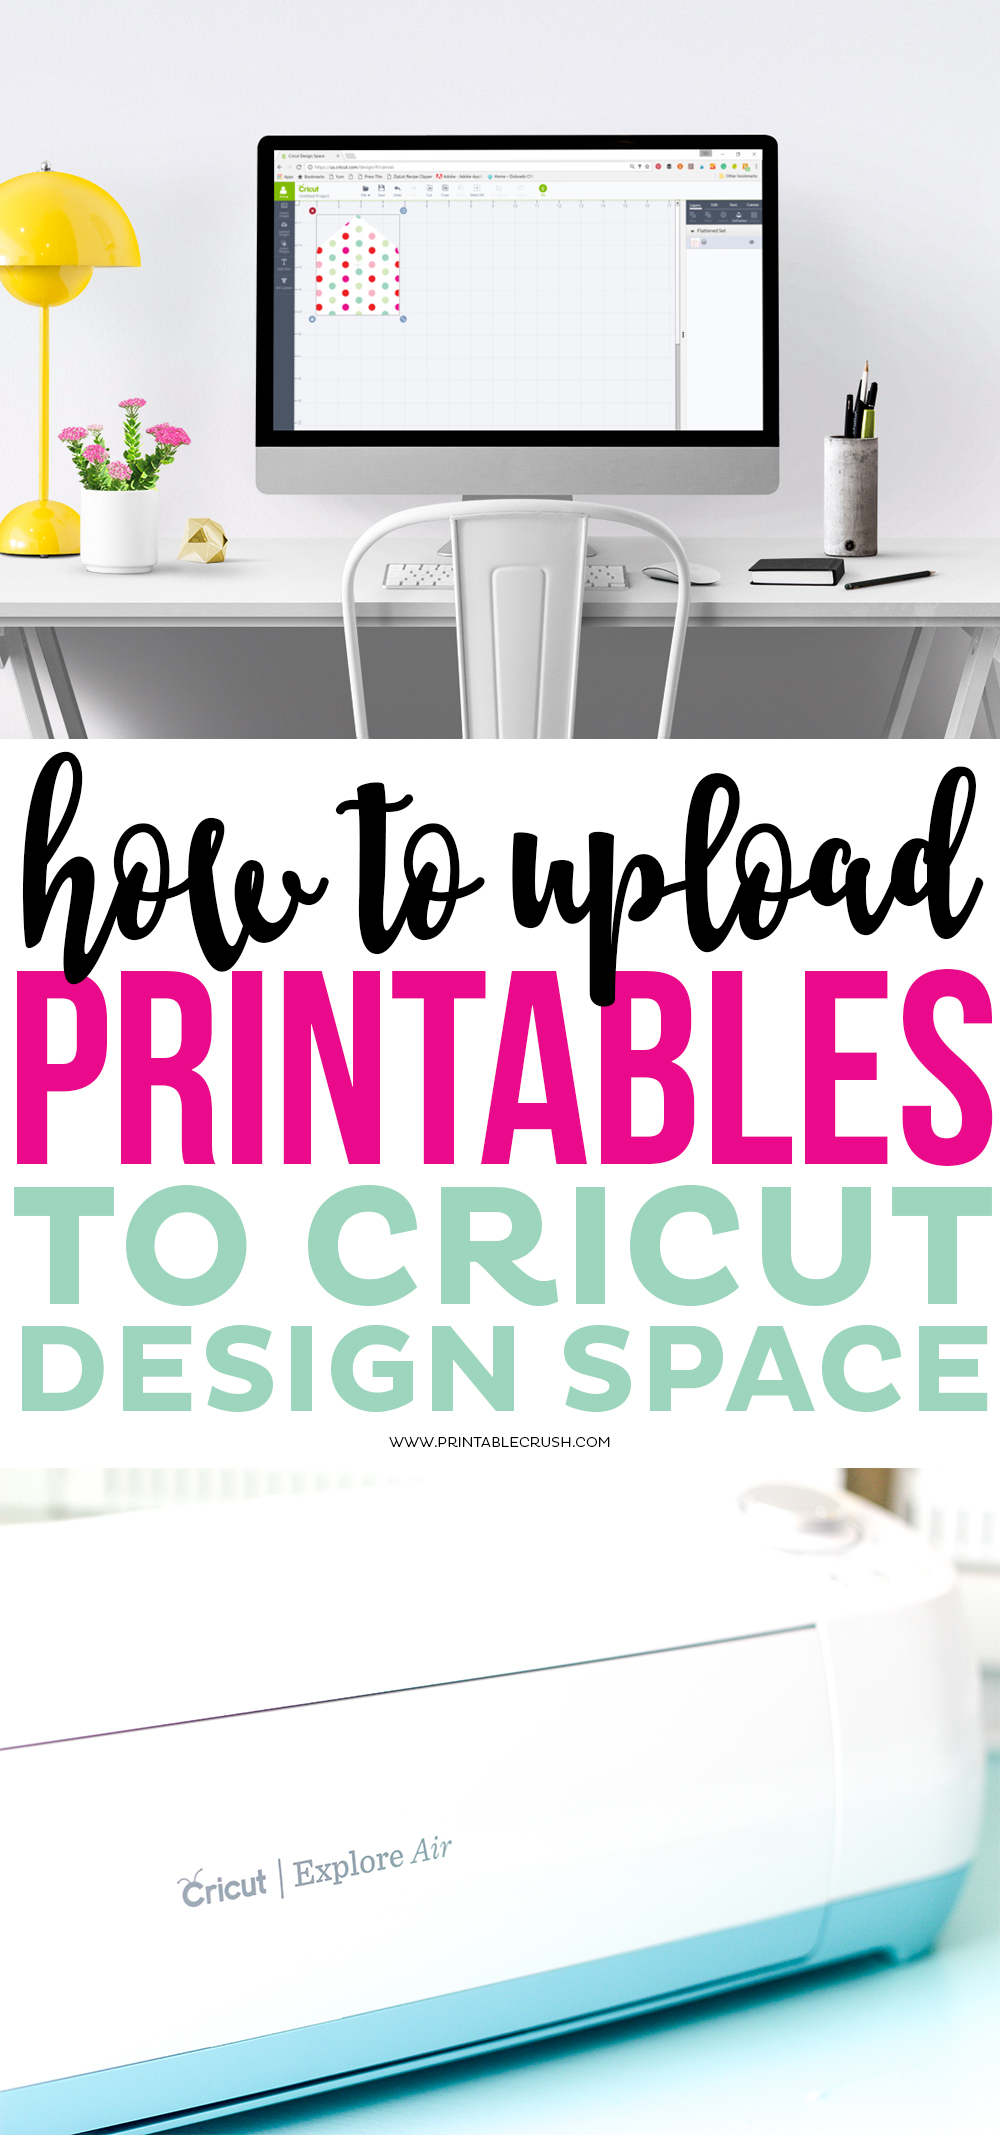 How to upload printables to cricut design space for Design a space online